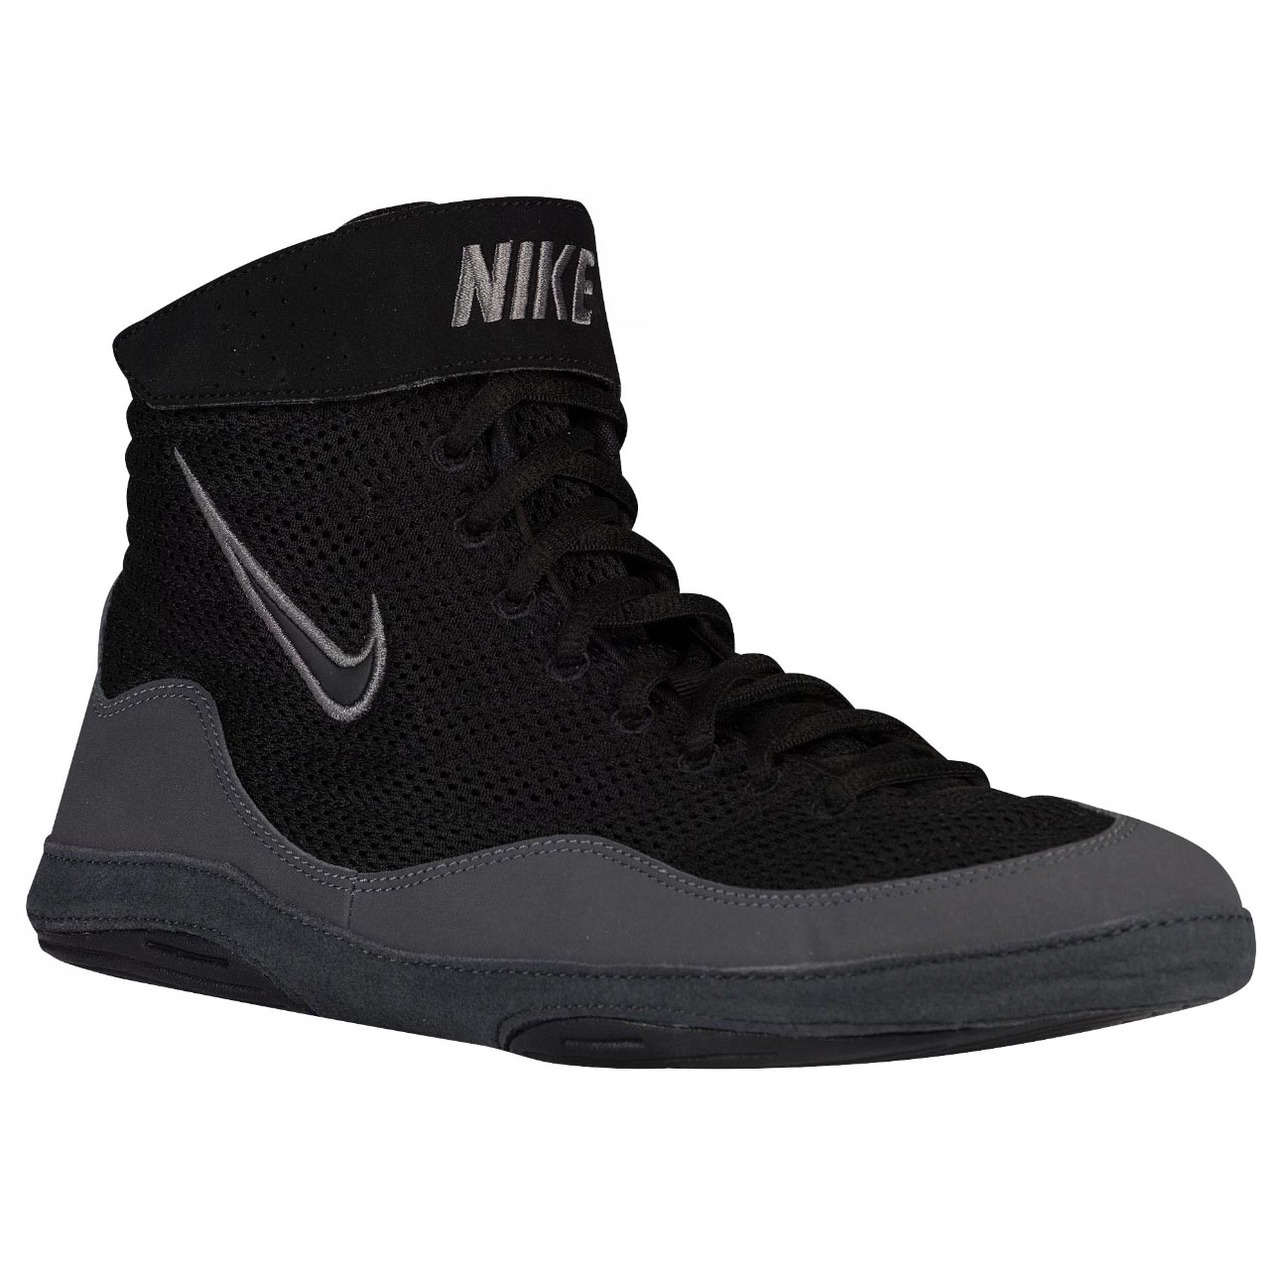 141a14649684 ... Nike Inflict 3 Boxing Boots Black Grey ...